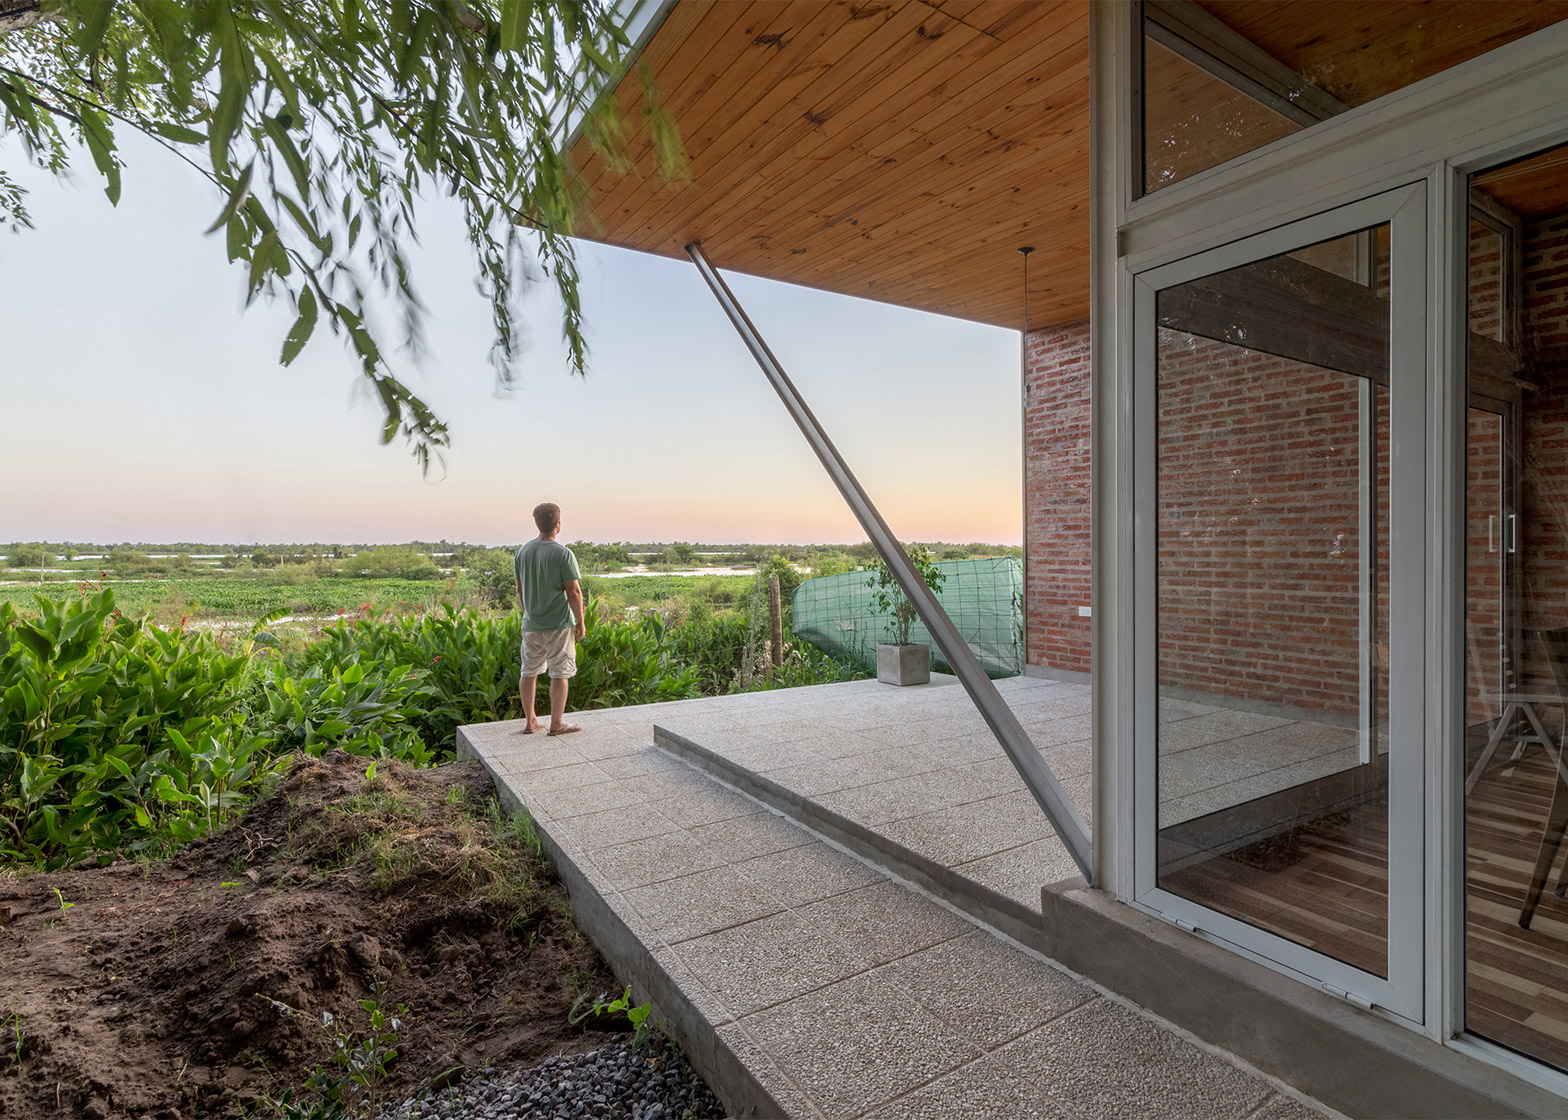 House 50 50 by Celula Urbana sits next to a river in Argentina